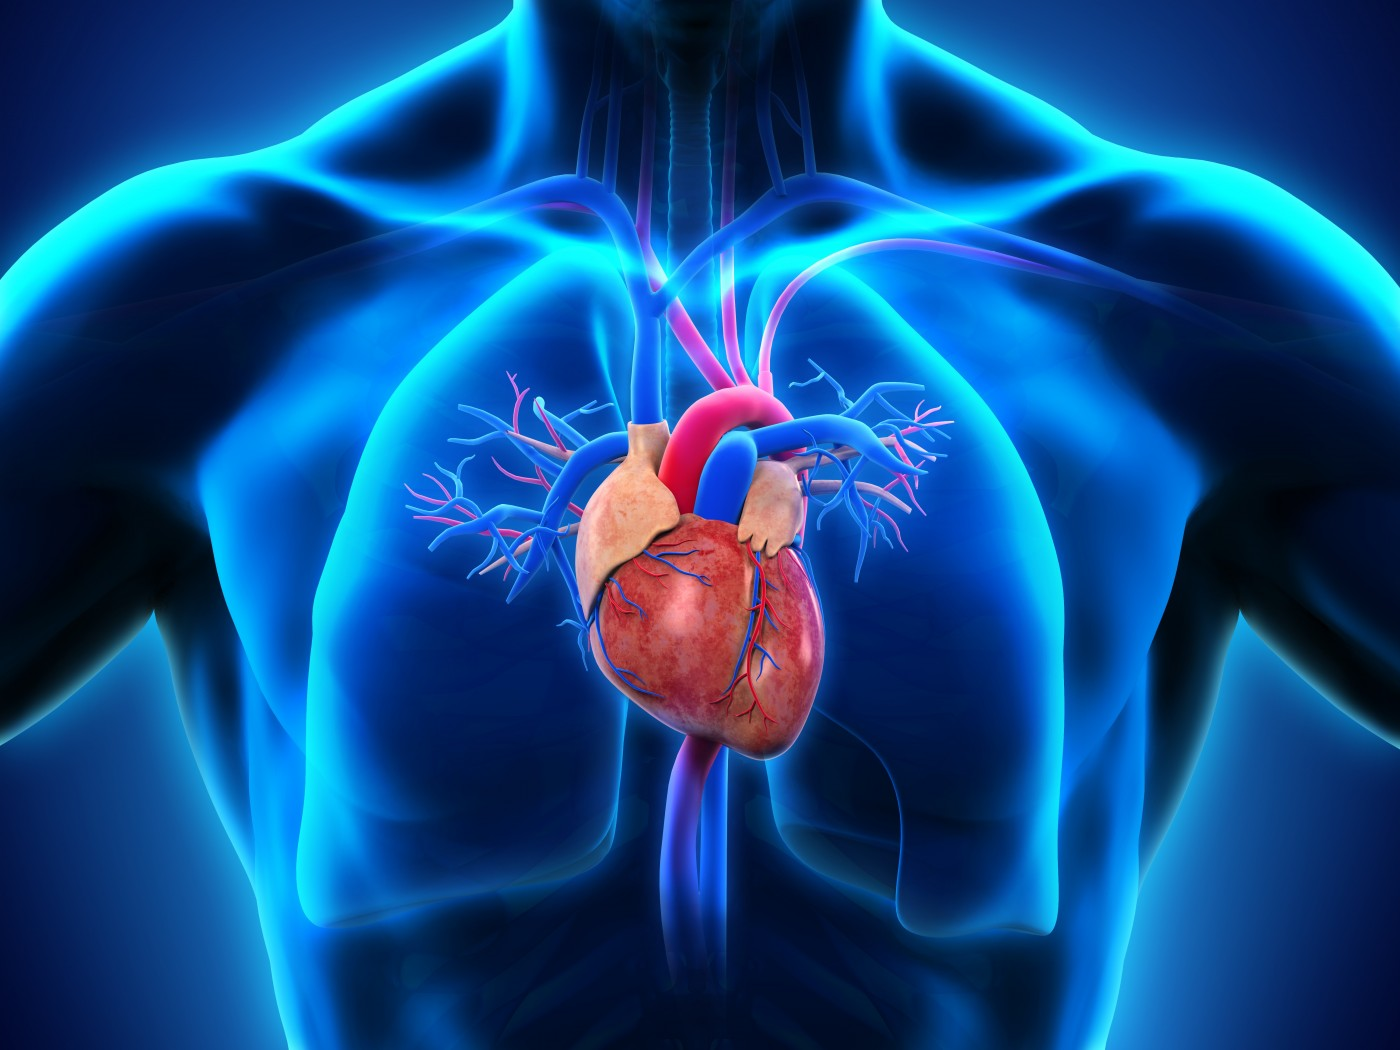 Nonsustained ventricular tachycardia study